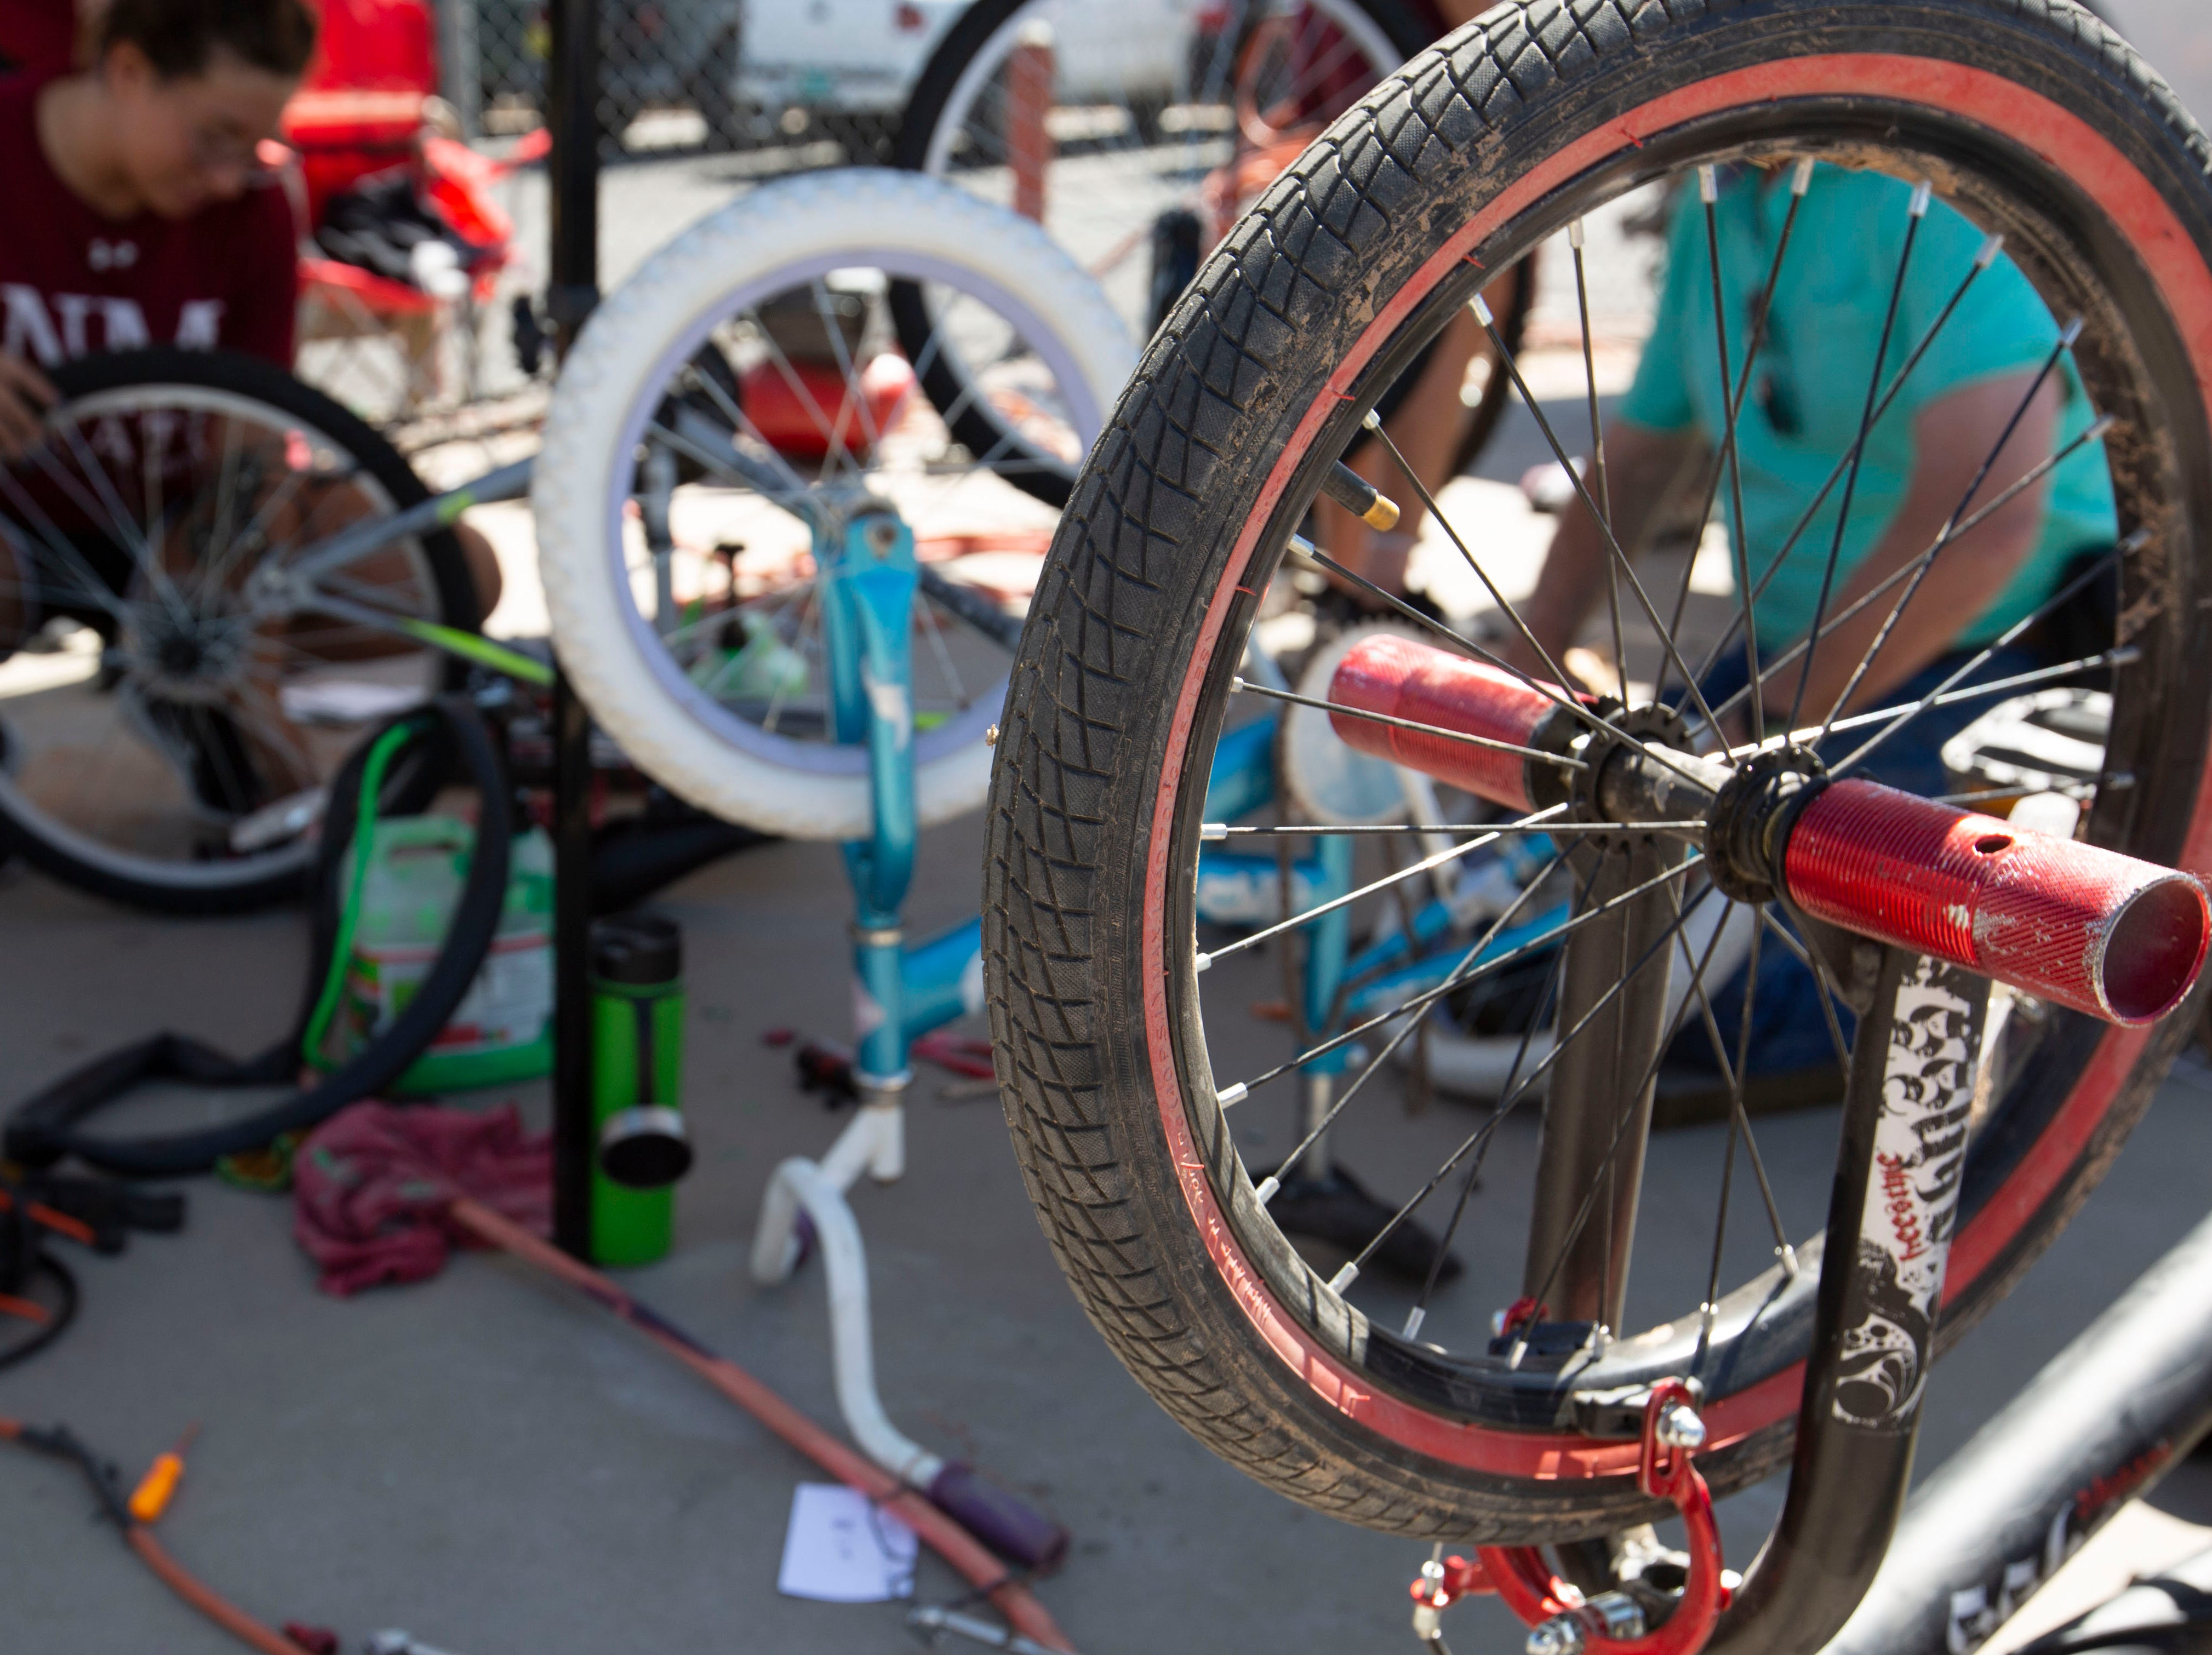 """The """"bike triage"""" corner at the Family Bike Fiesta was busy with bikes waiting to be repaired by volunteers on Saturday April 27, 2019."""